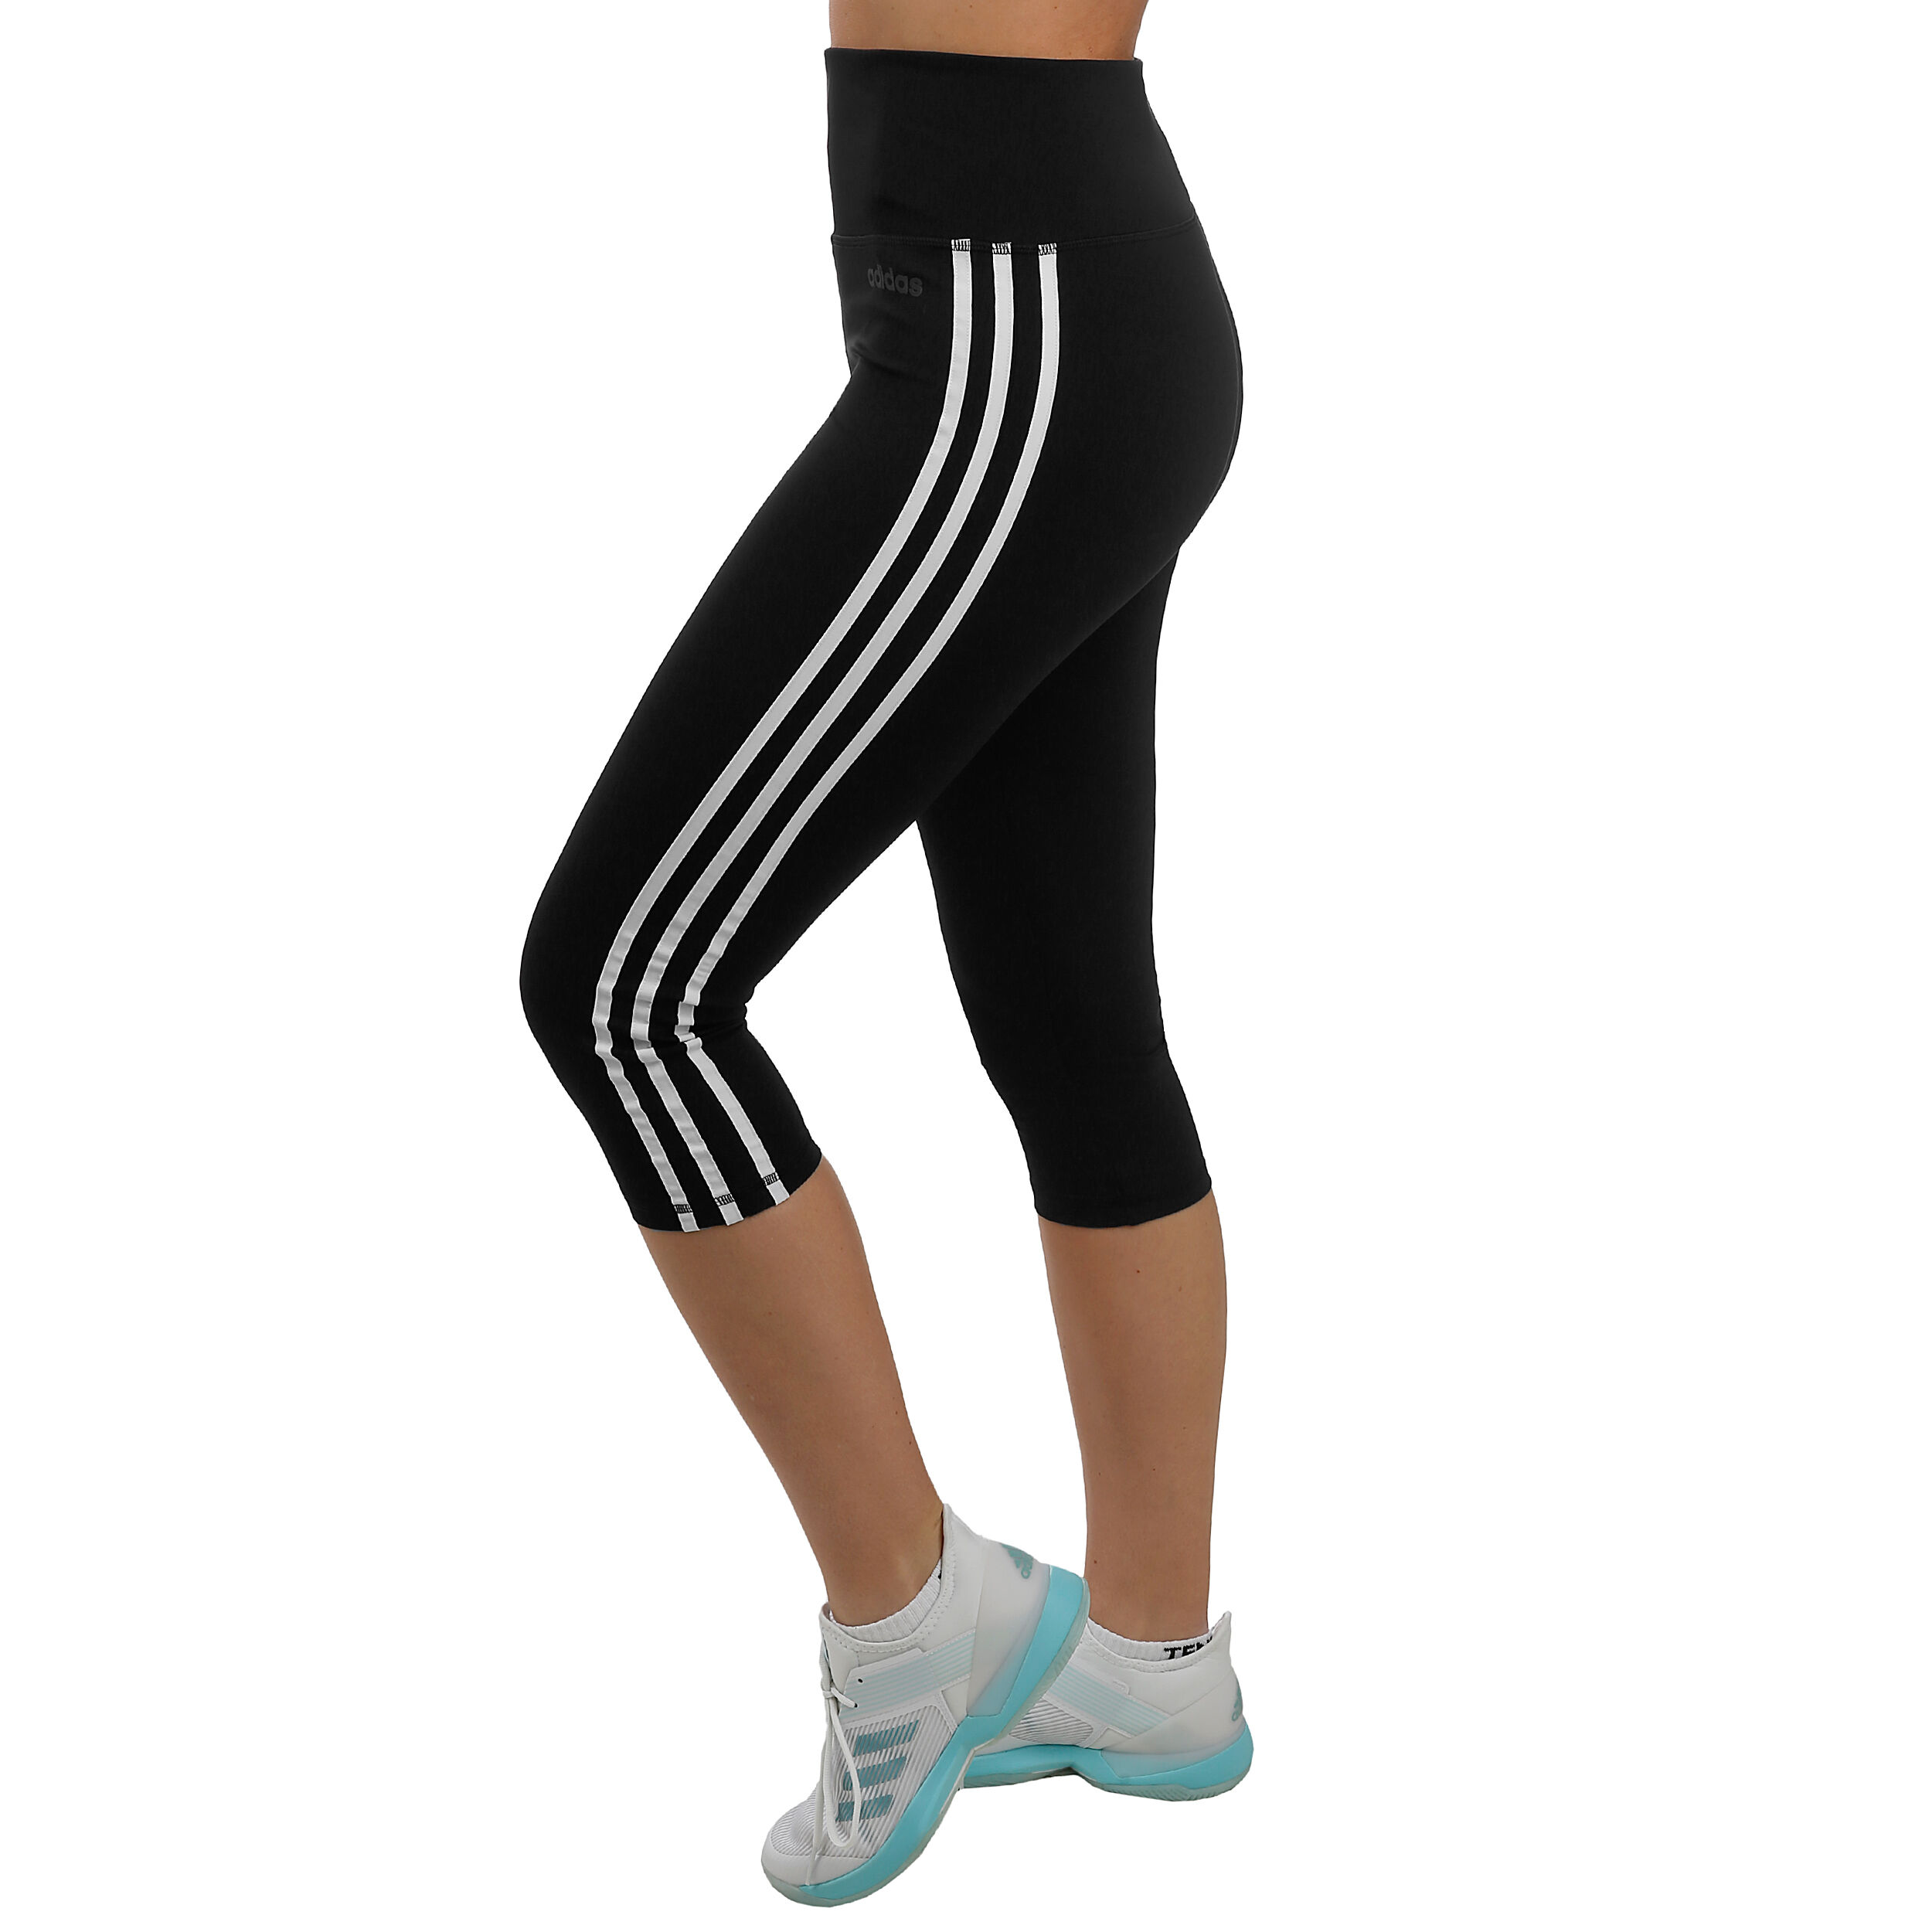 adidas D2M High Rise 3 Stripes Tight Damen Schwarz, Weiß